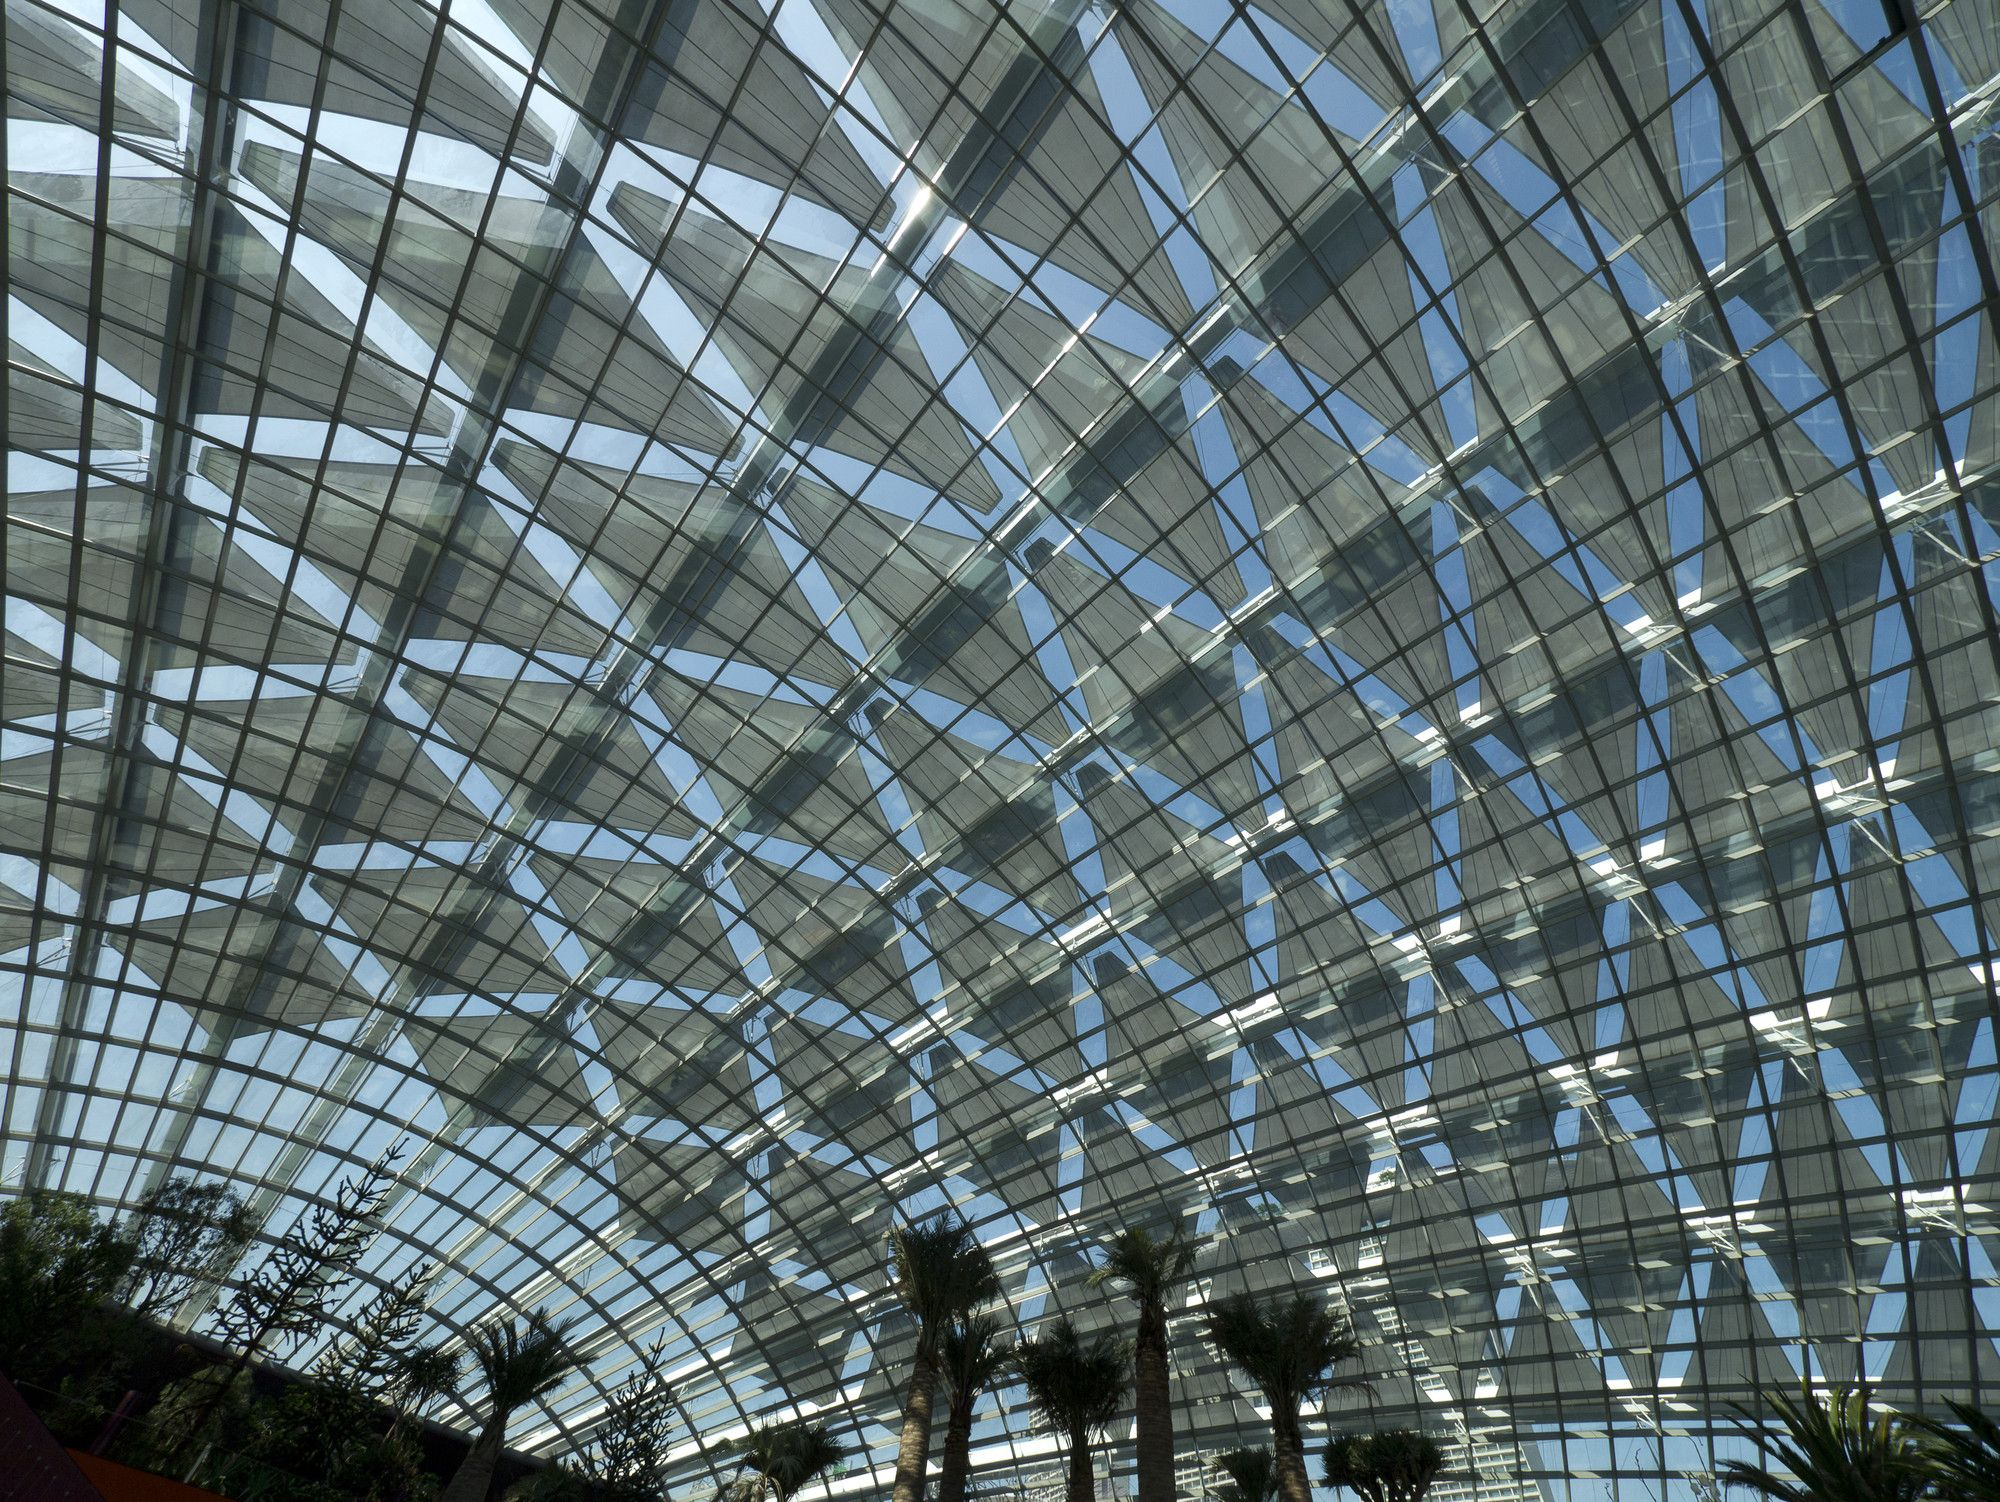 Gallery - Cooled Conservatories at Gardens by the Bay / Wilkinson Eyre Architects - 11